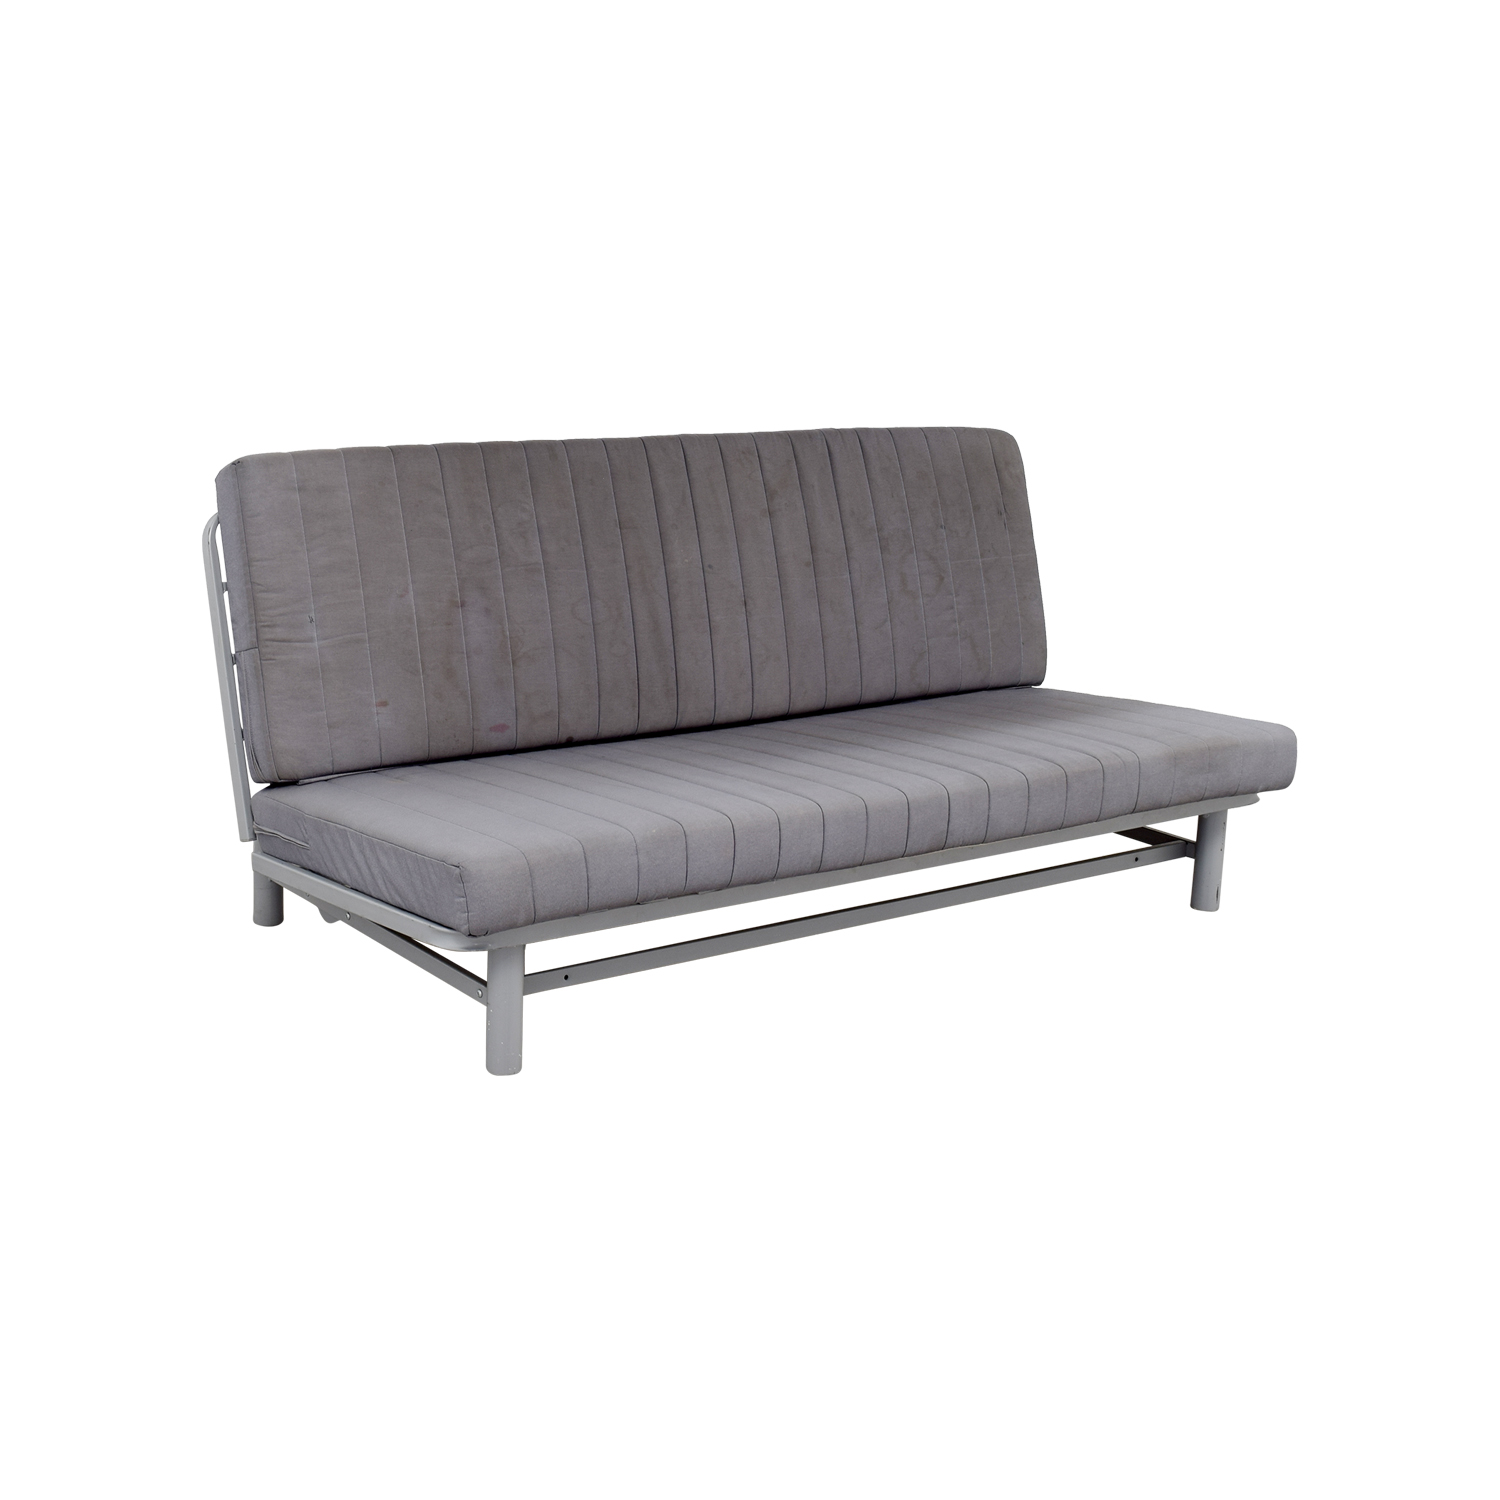 Bed sofas ikea friheten corner sofa bed with storage for Ikea gray sofa